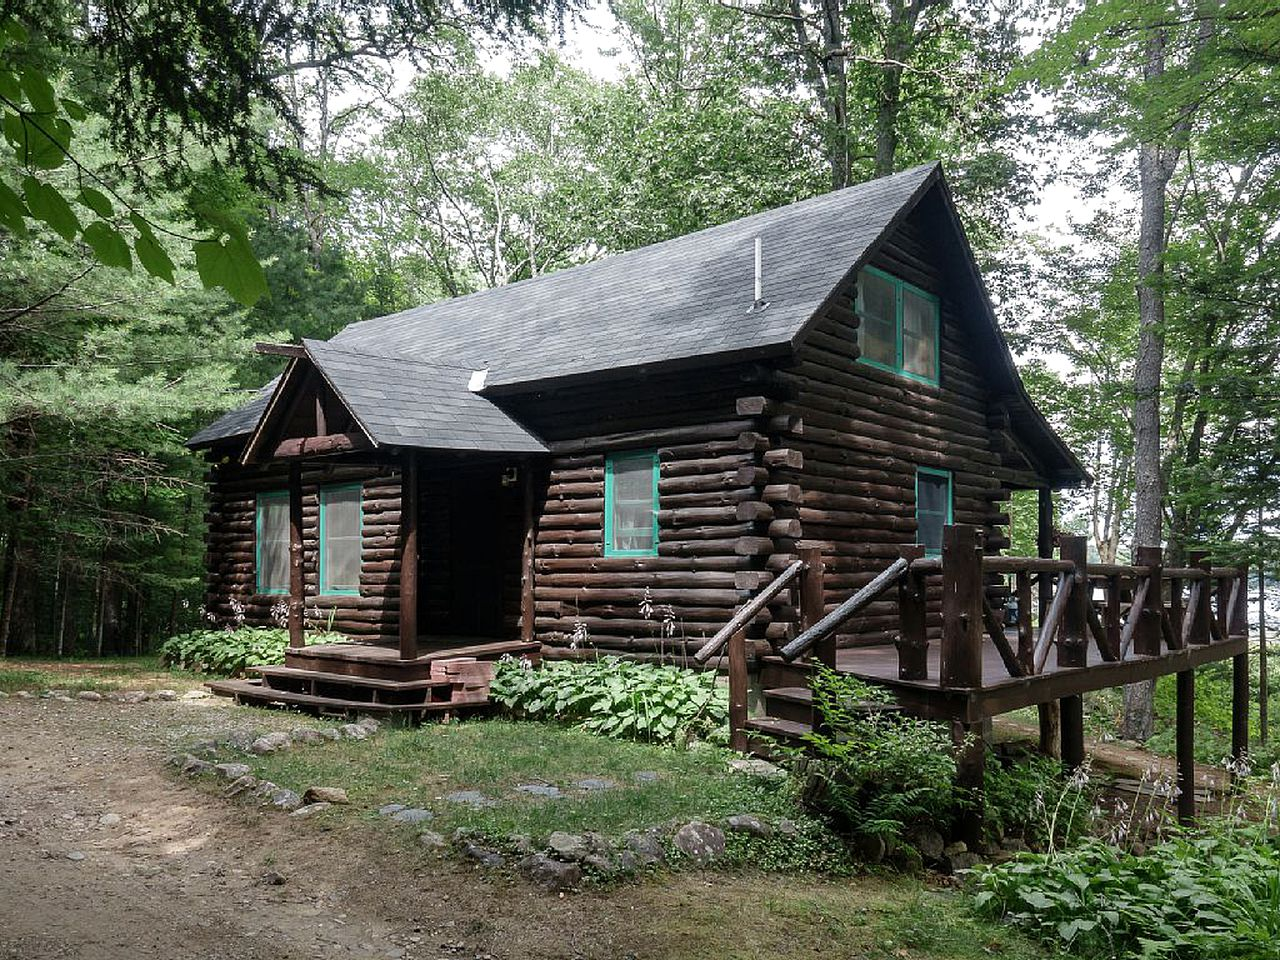 Adirondack cabins for a vacation in New York.